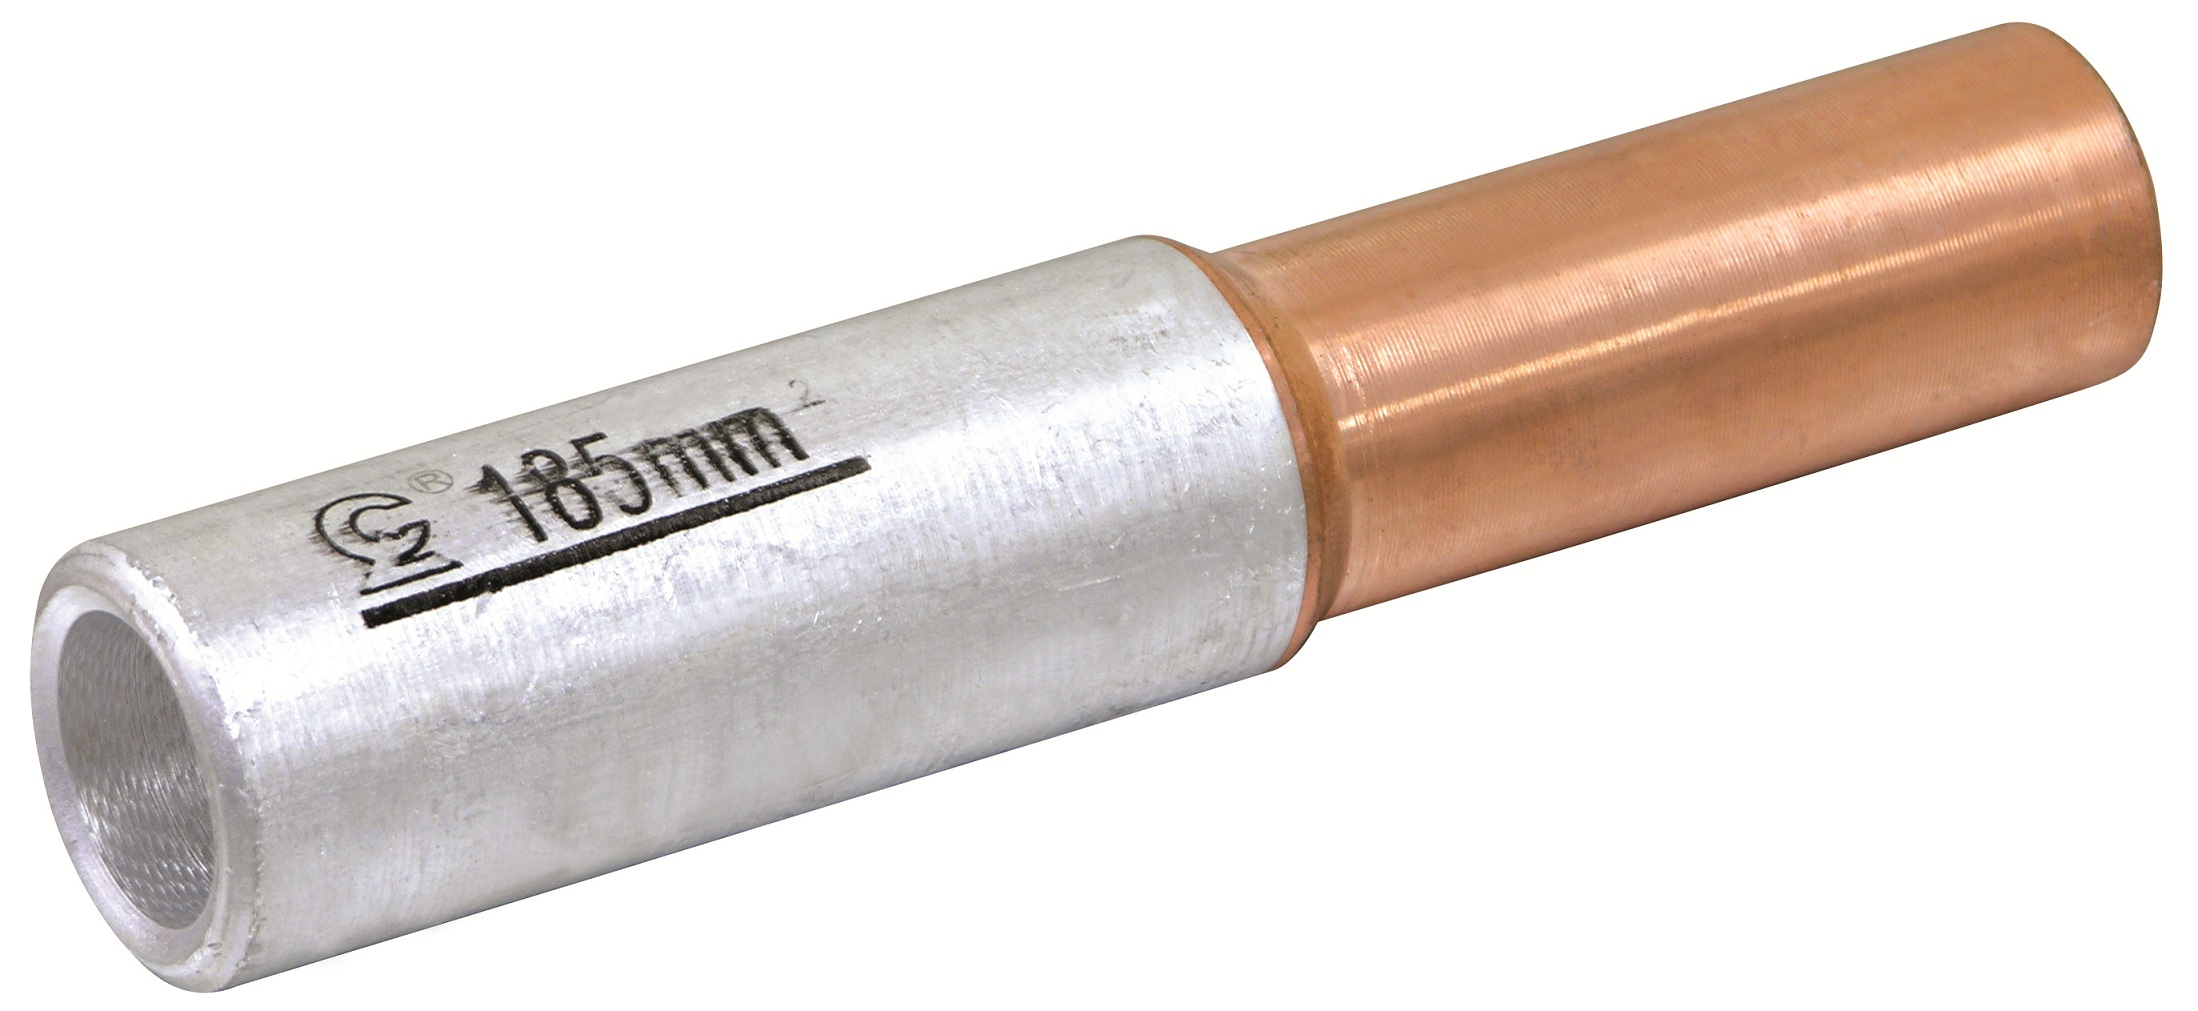 bi-metal cable ferrule